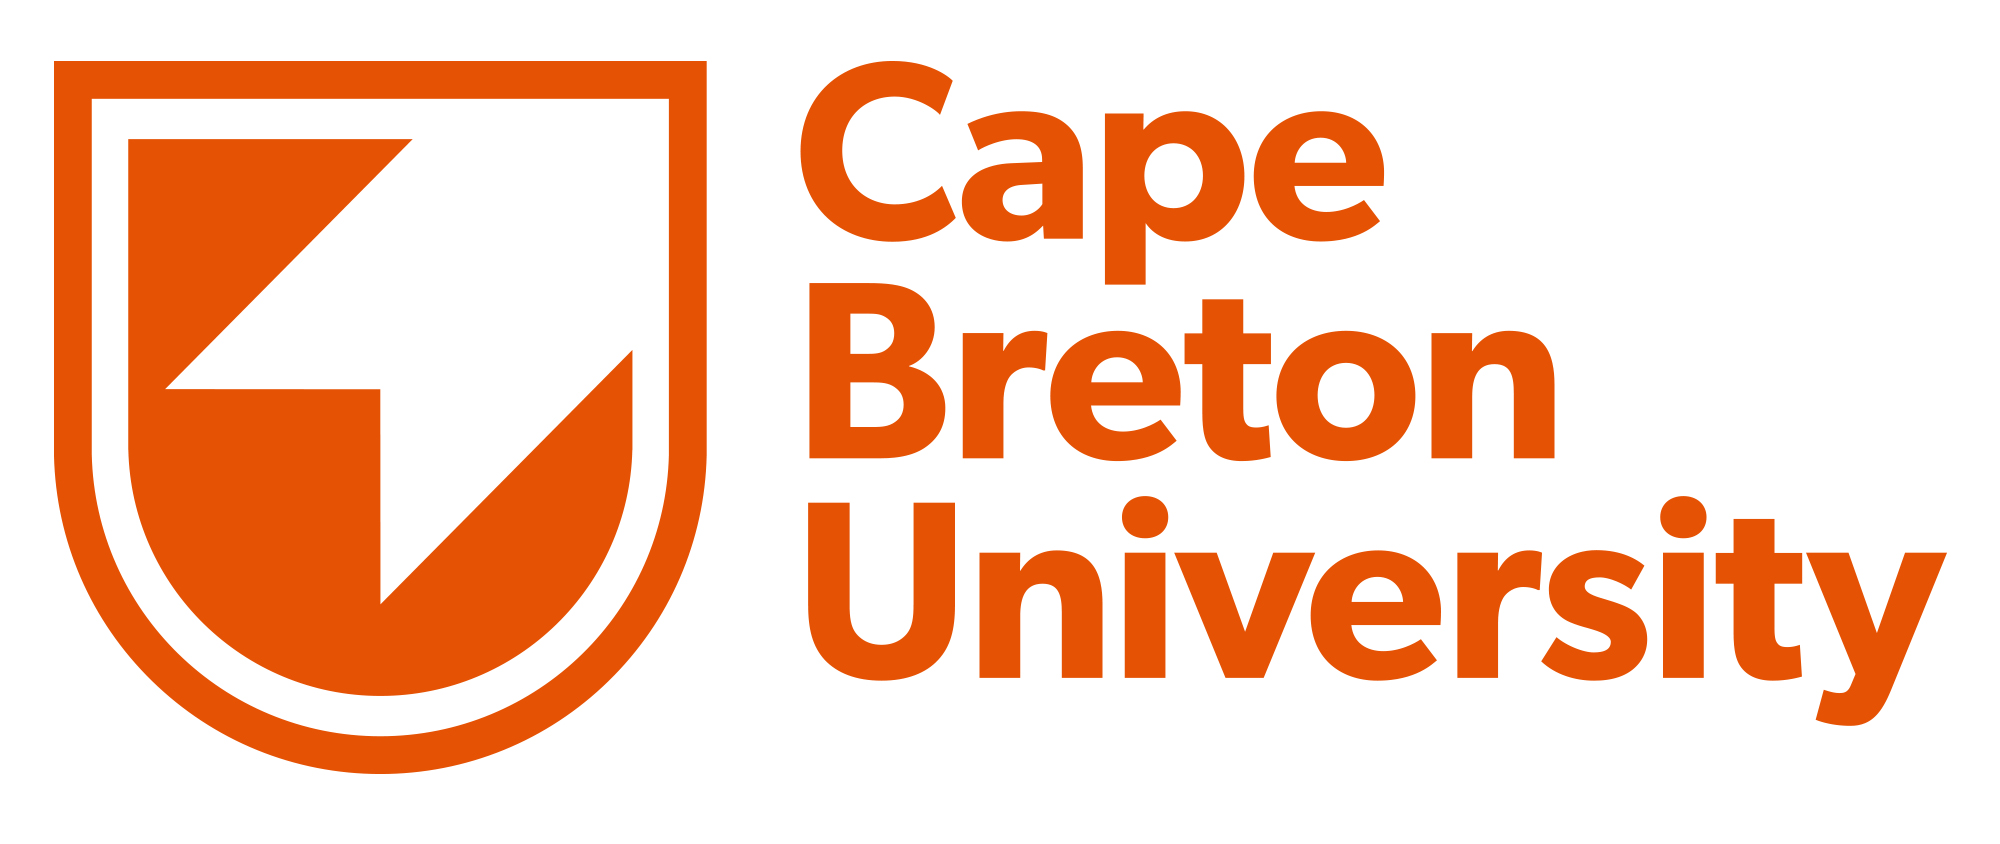 CBU_Logo_FULL_ORANGE